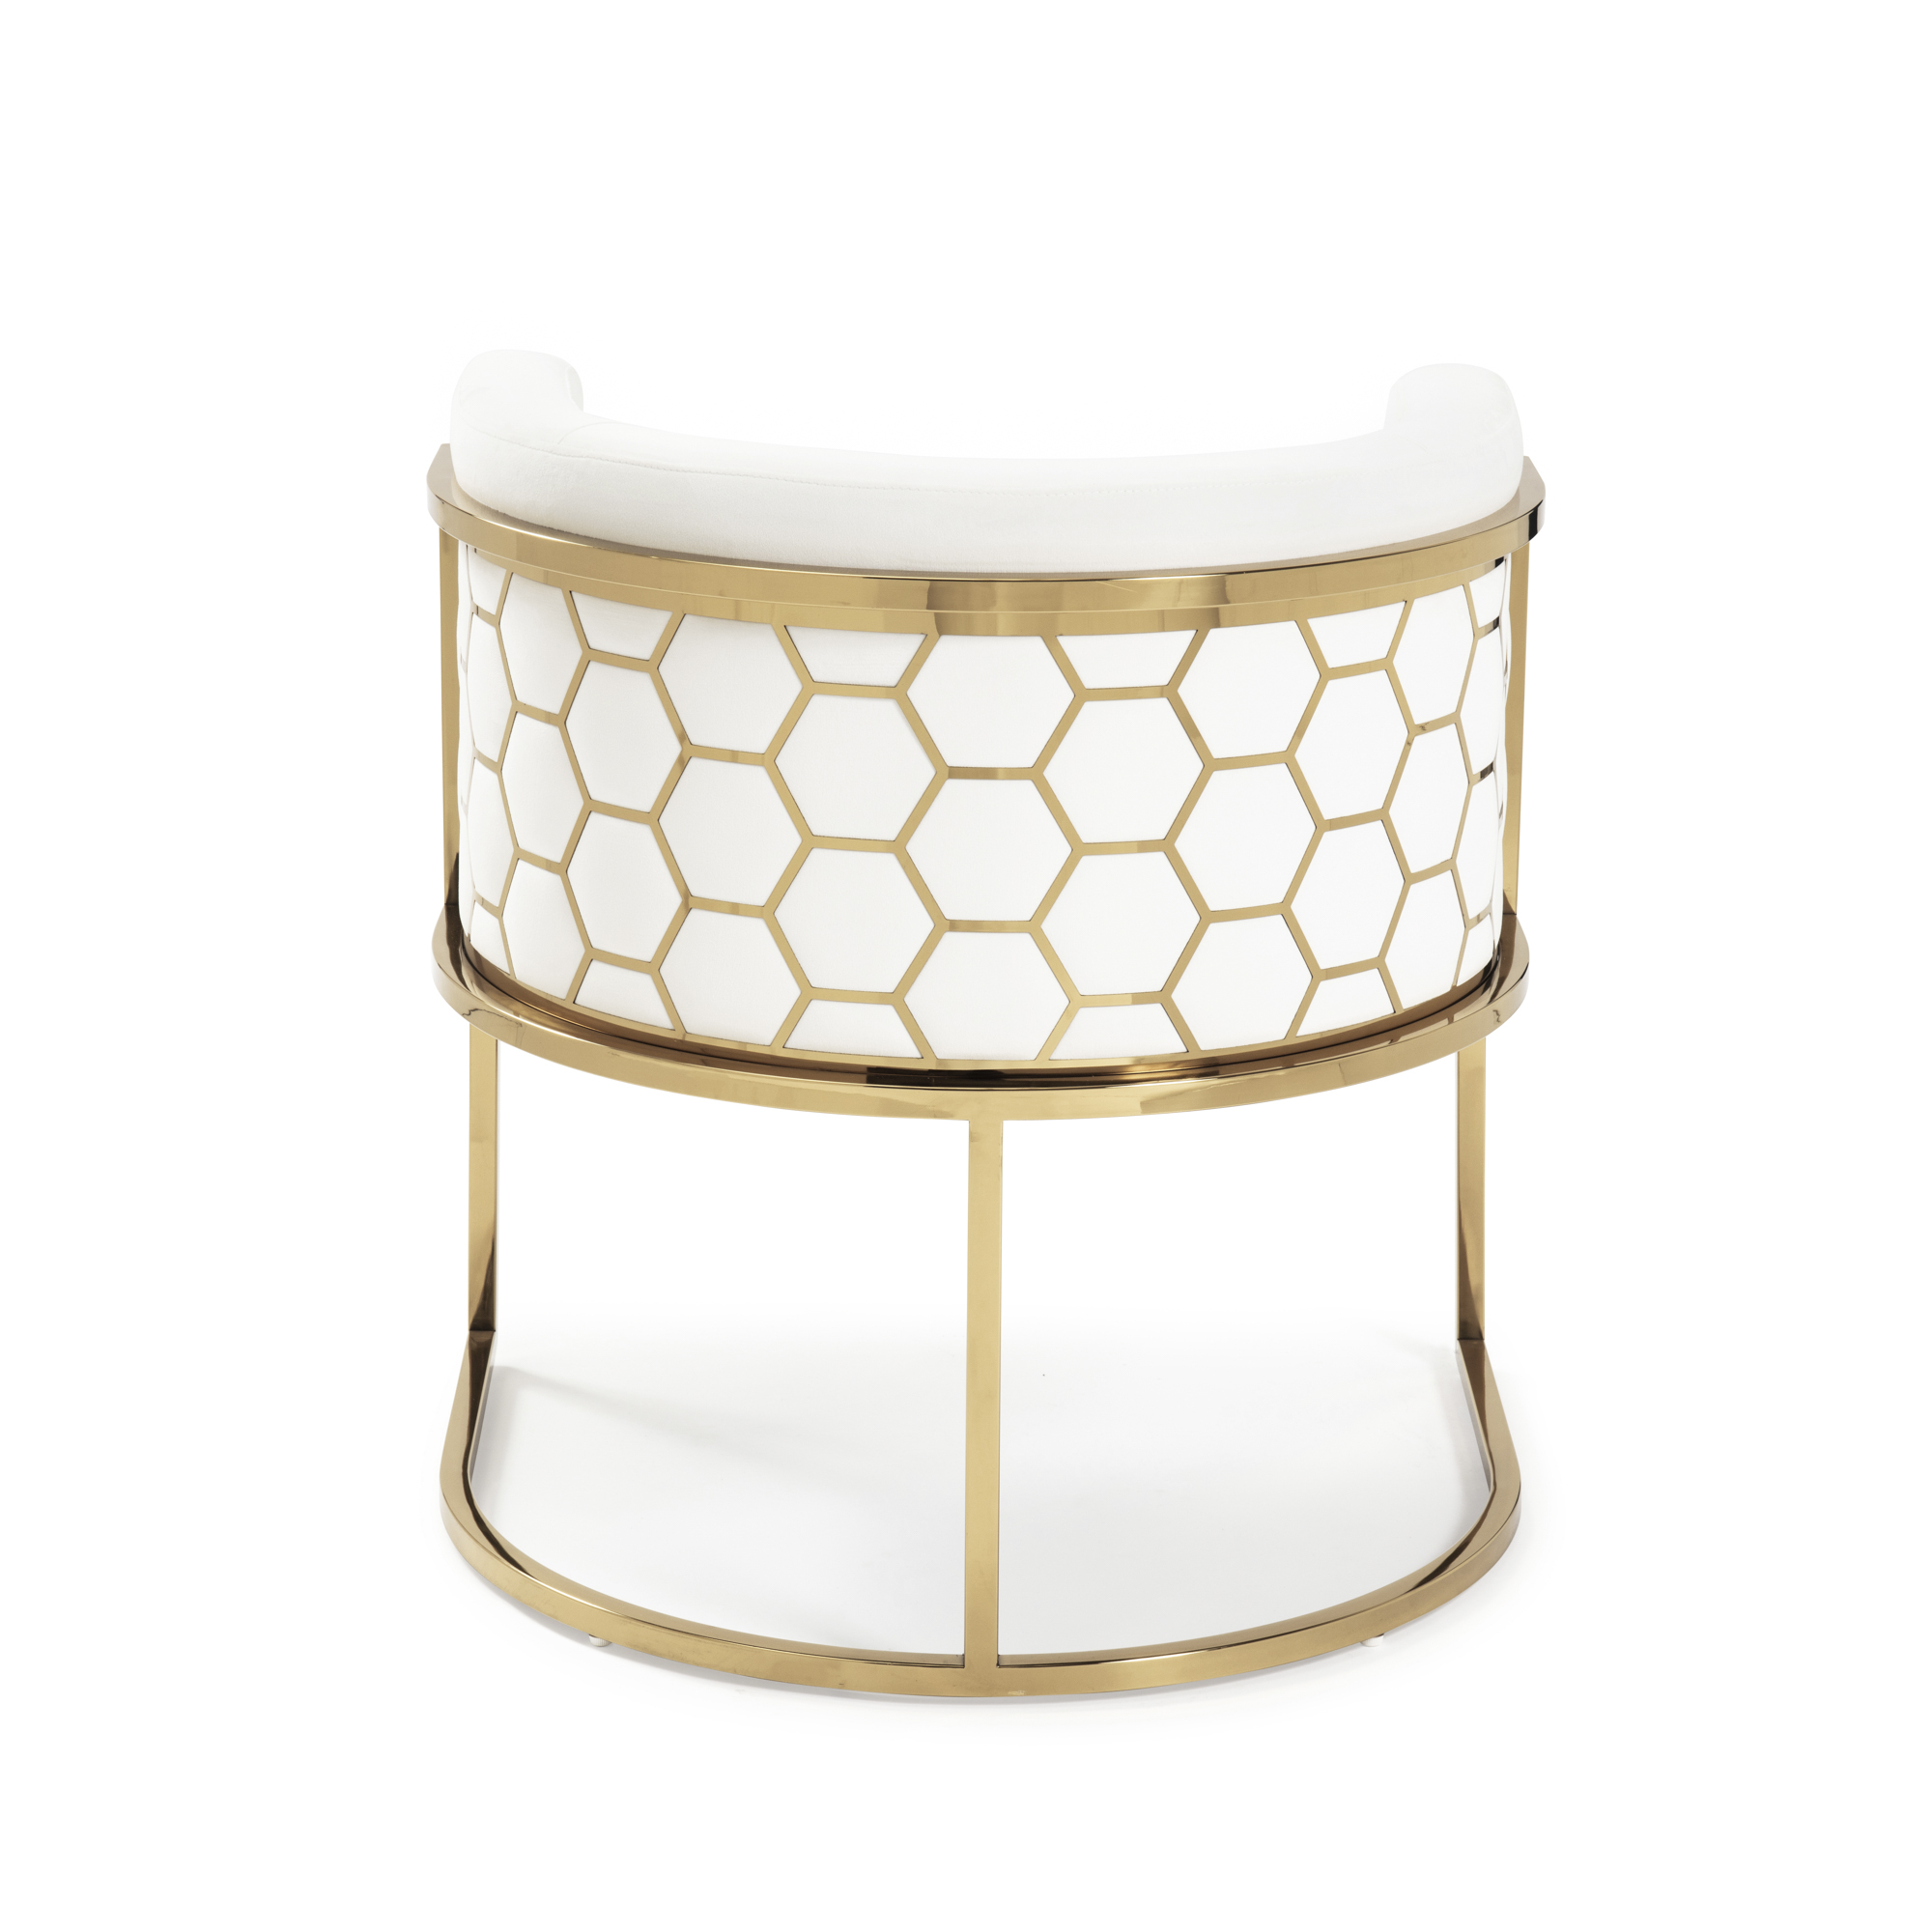 Barcelona Brushed Velvet Pearl White Dining Chair with a Gold Steel Frame